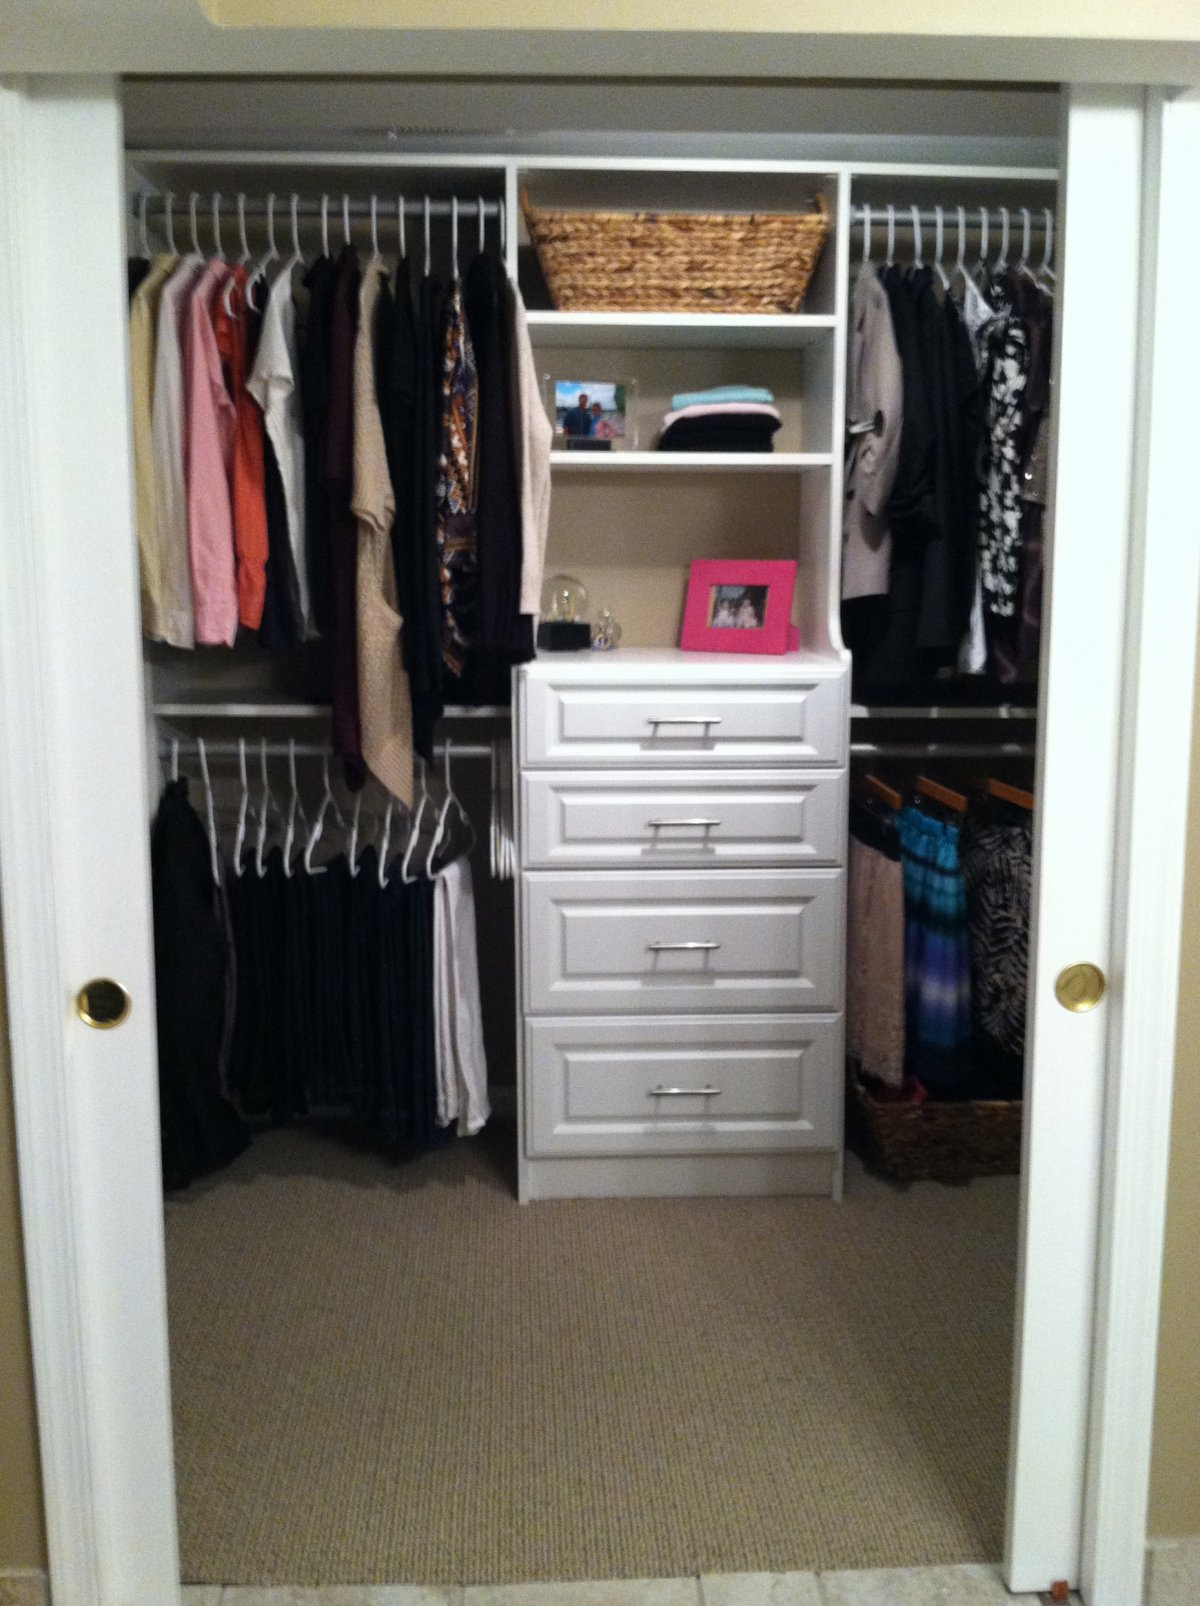 Small Bedroom Closet Organization Ideas - HomesFeed